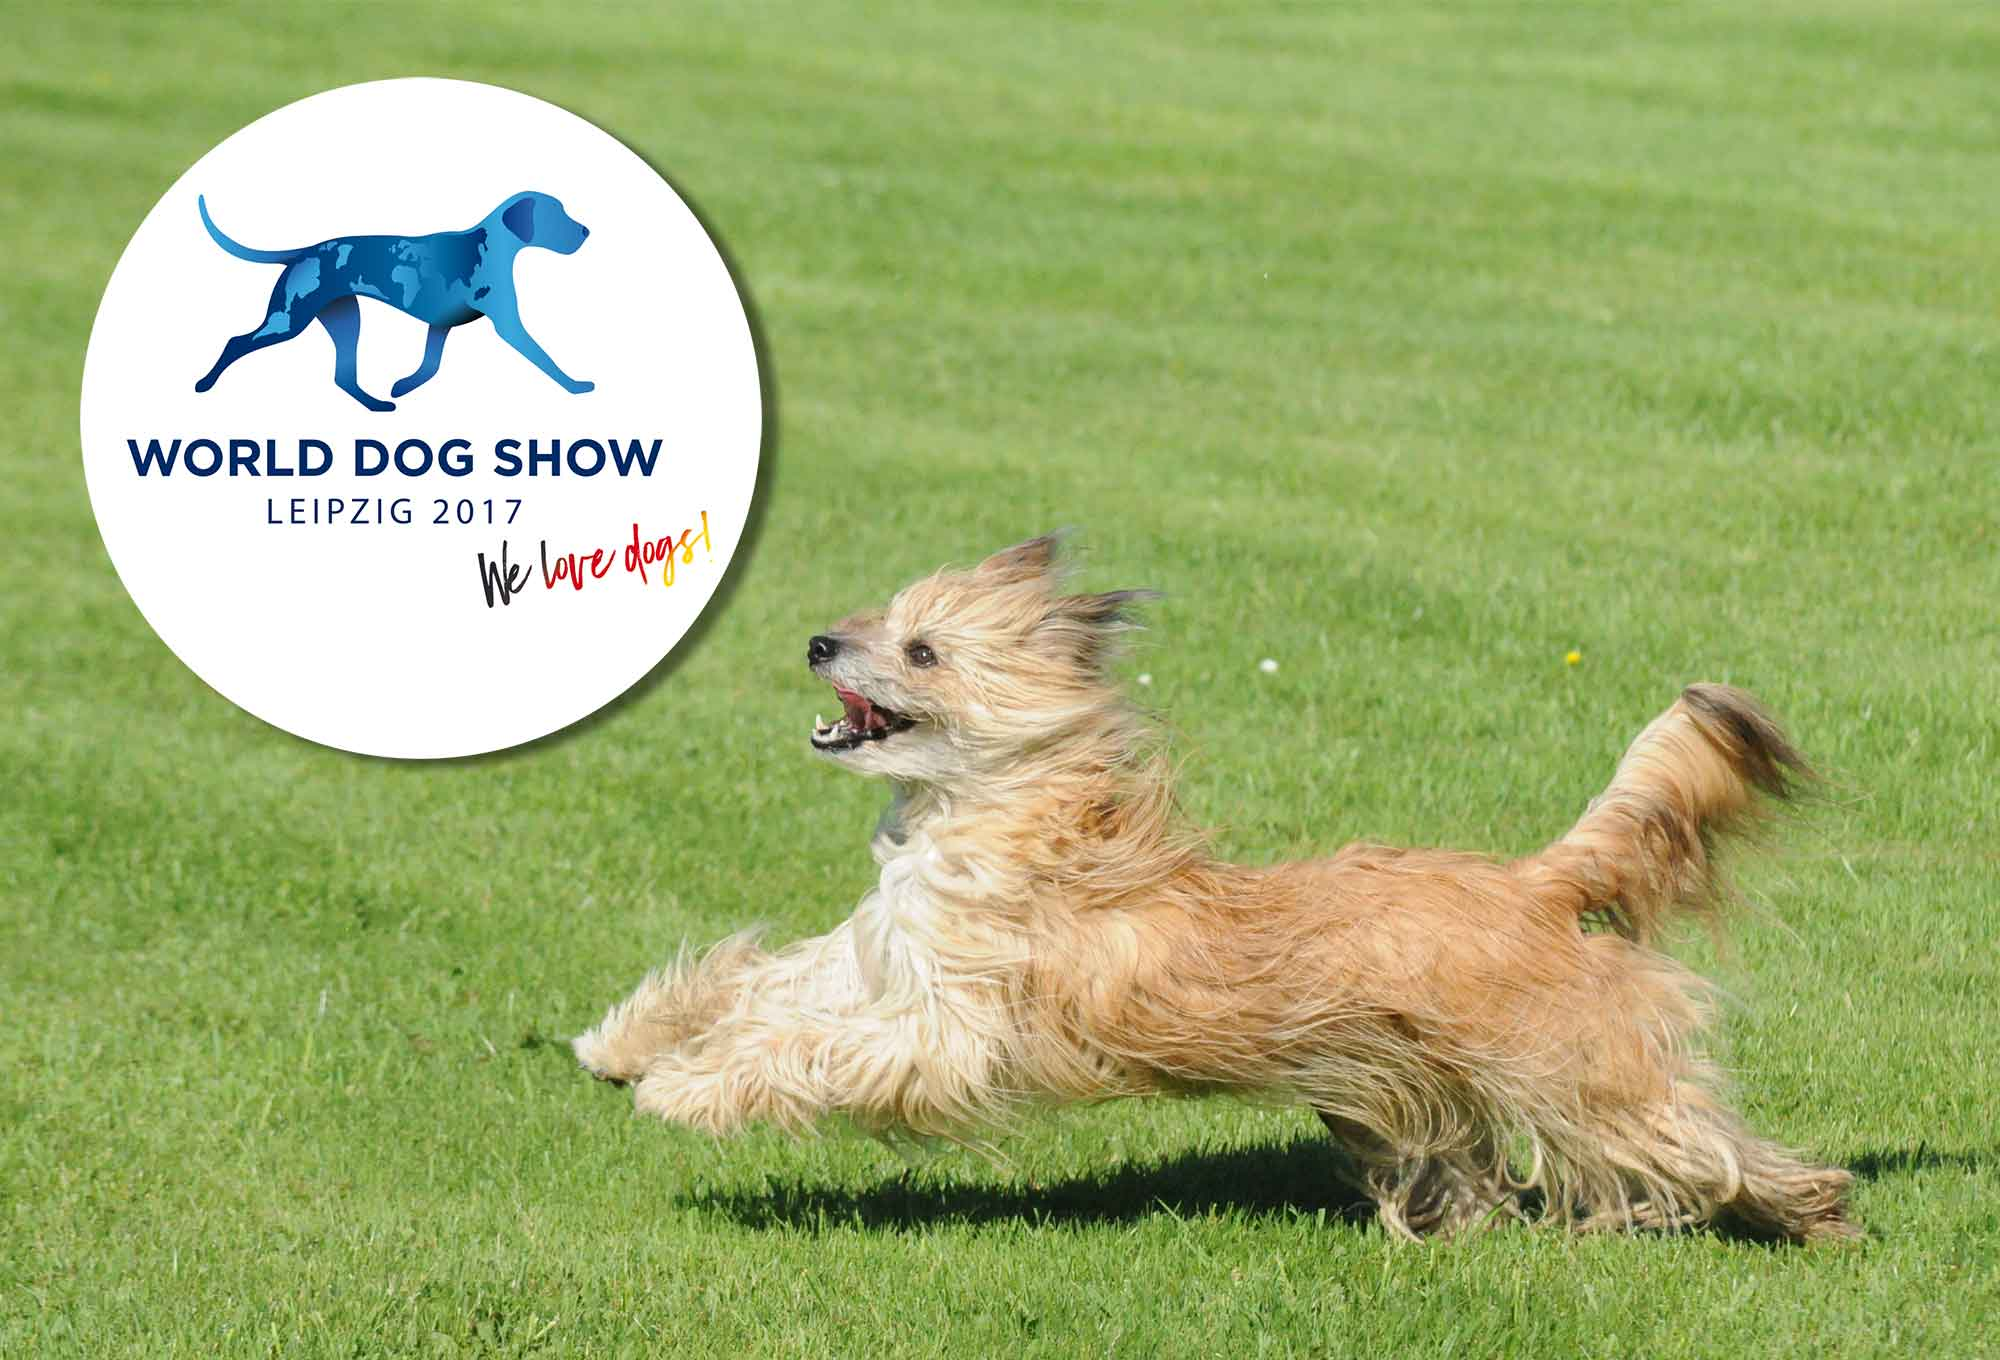 cbp-Rahmenprogramm zur World Dog Show